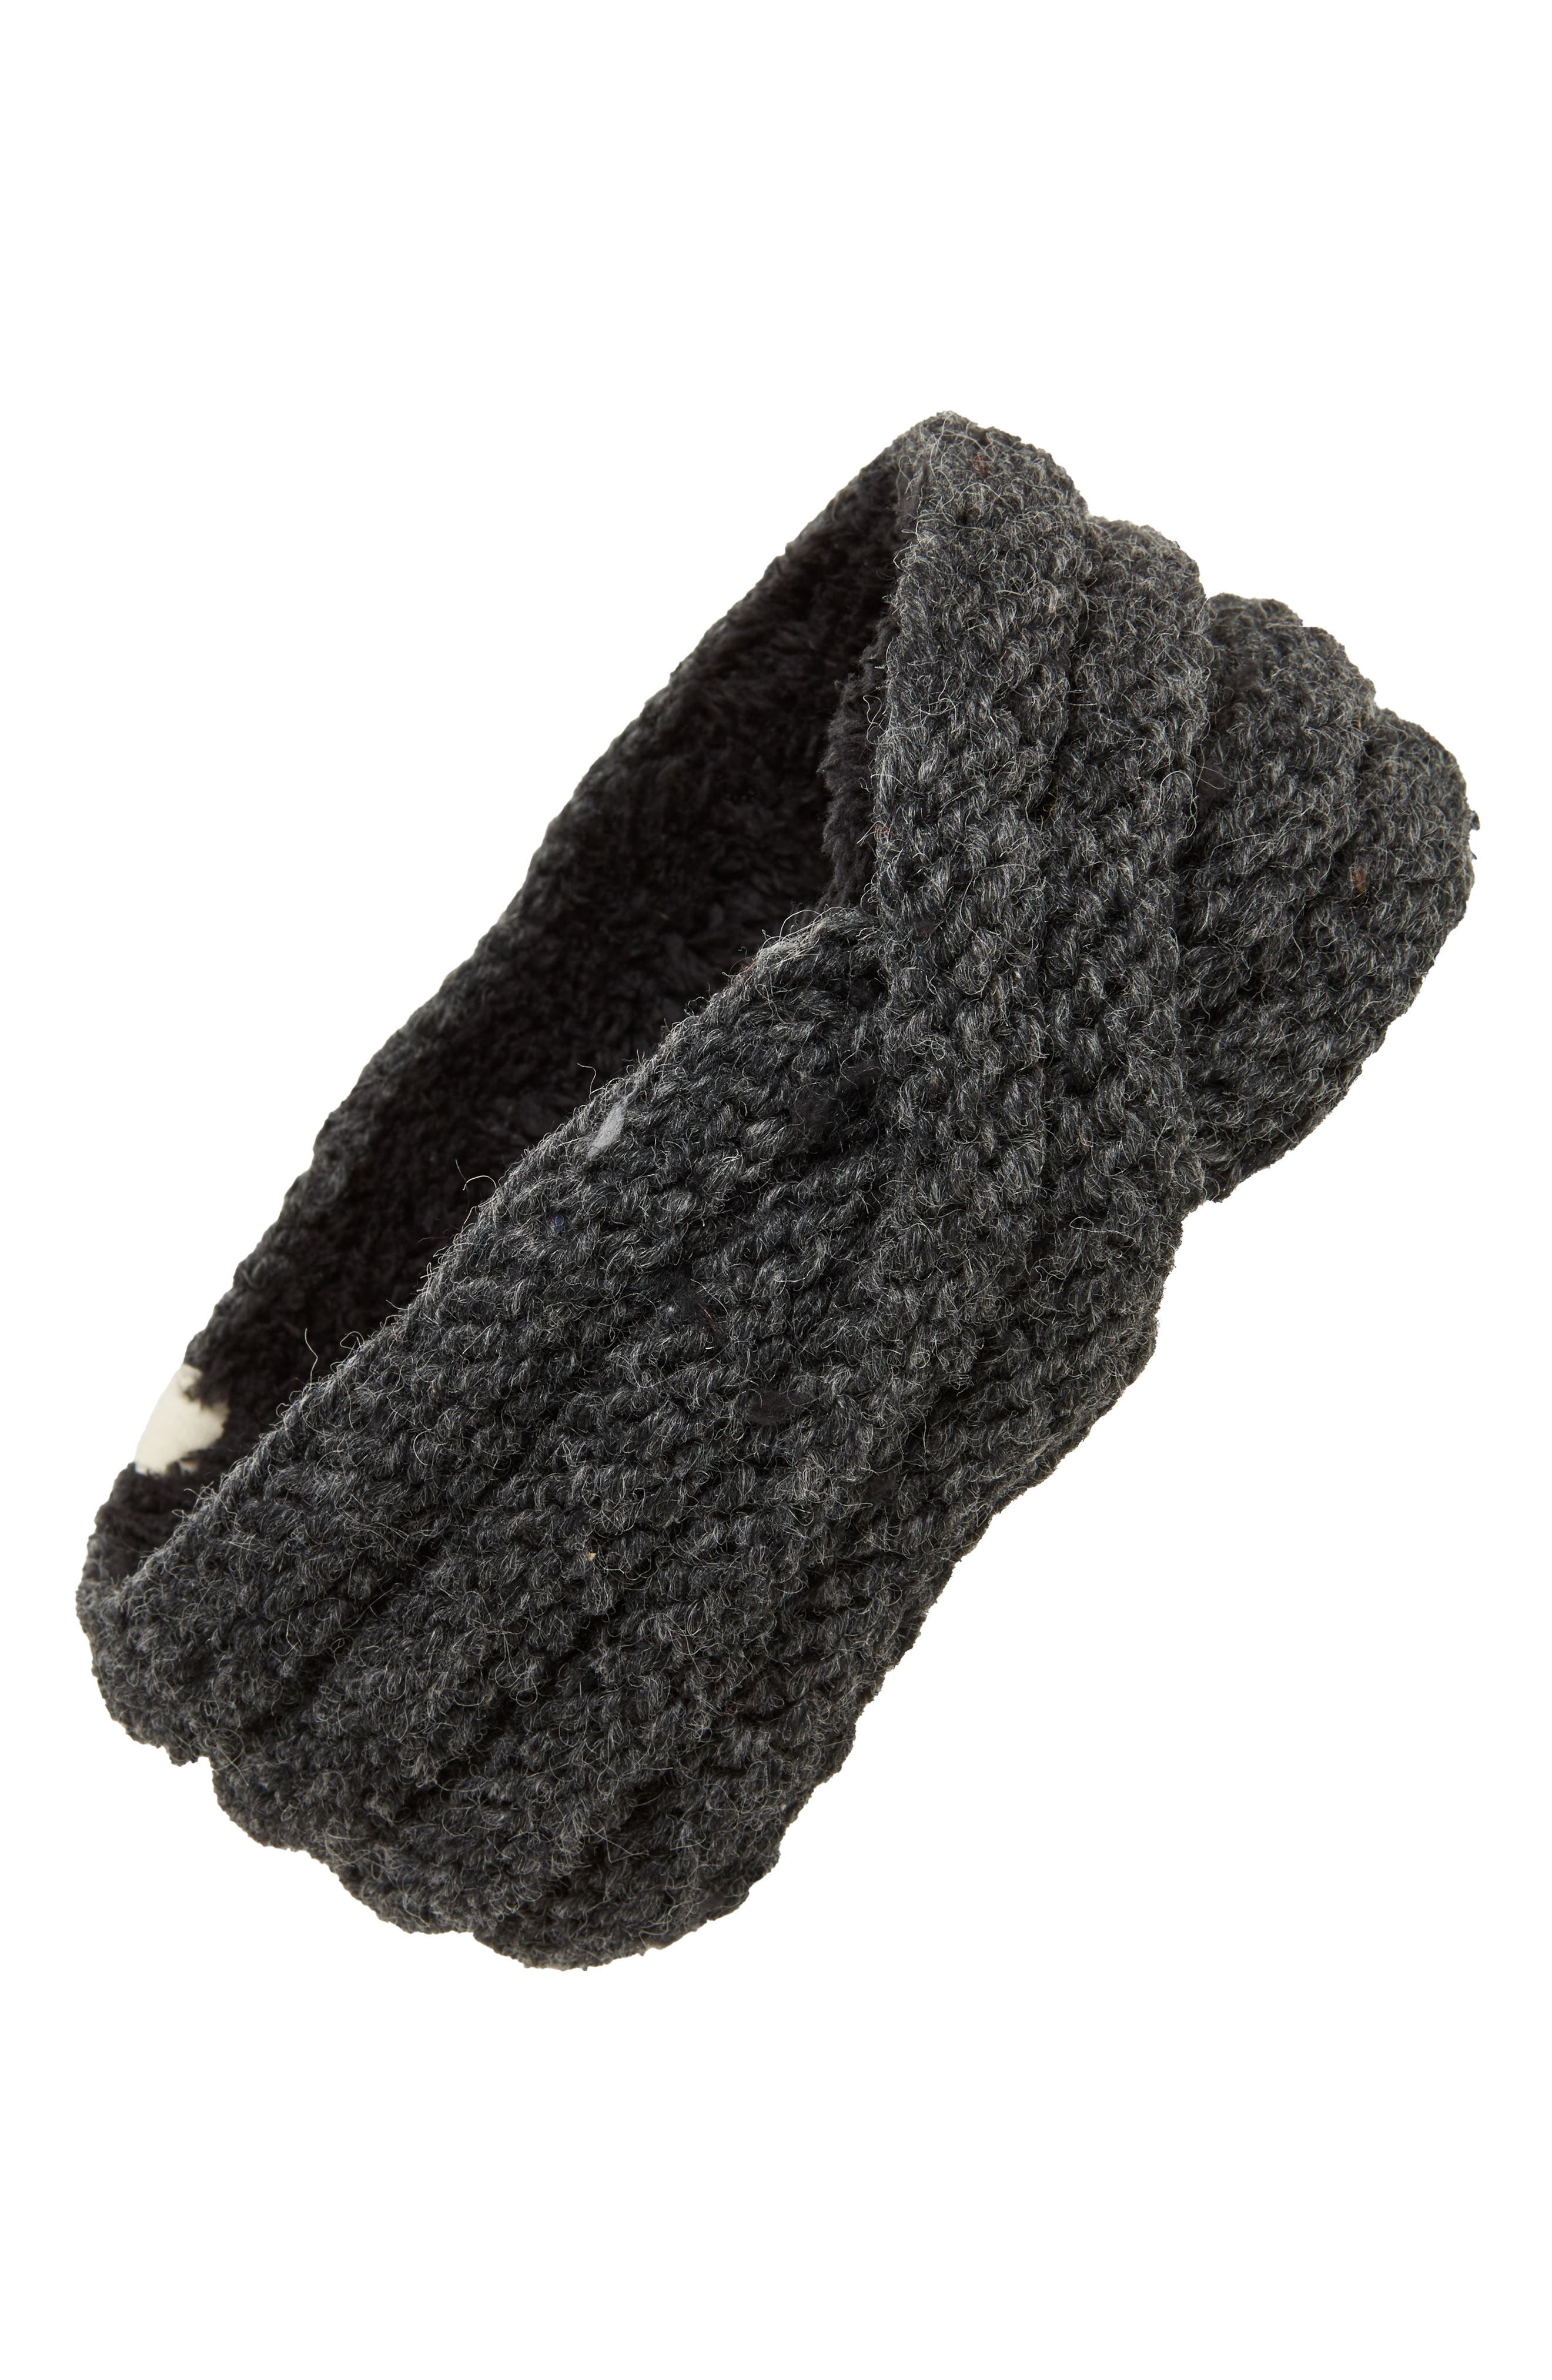 Veronica Cabled Wool Headband,                         Main,                         color, CHARCOAL